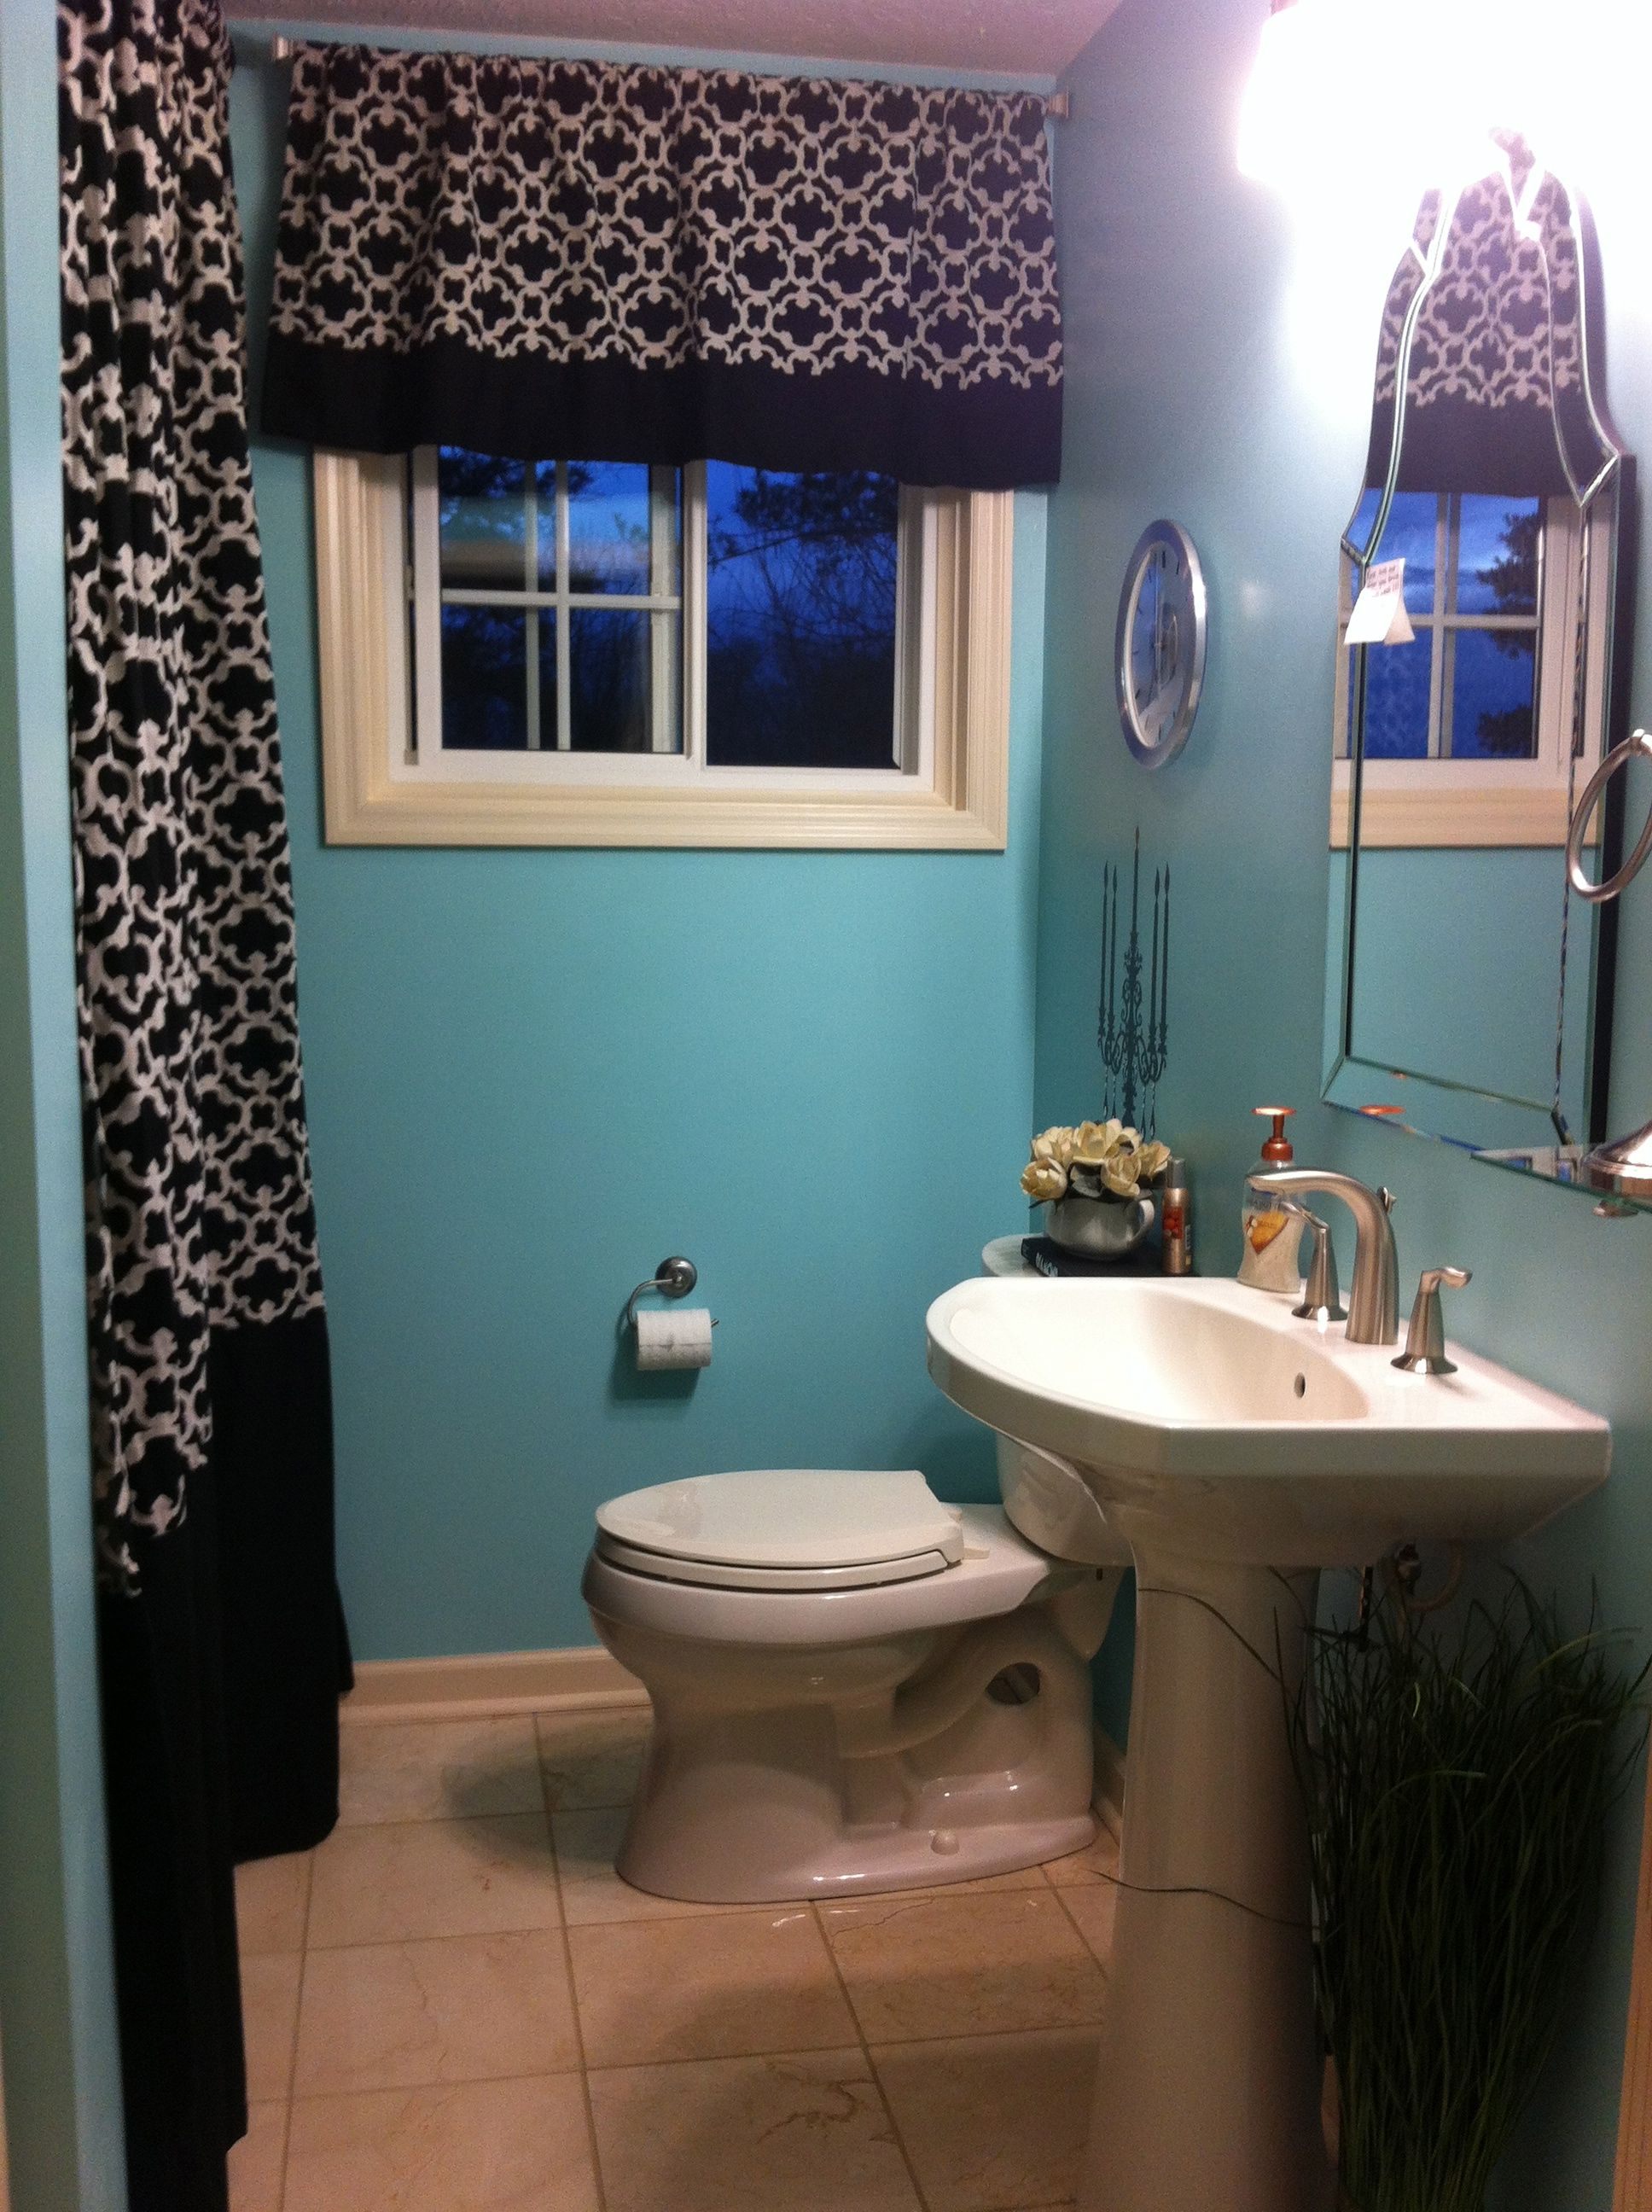 Small bathroom remodel. Shower curtains go from ceiling to floor ...